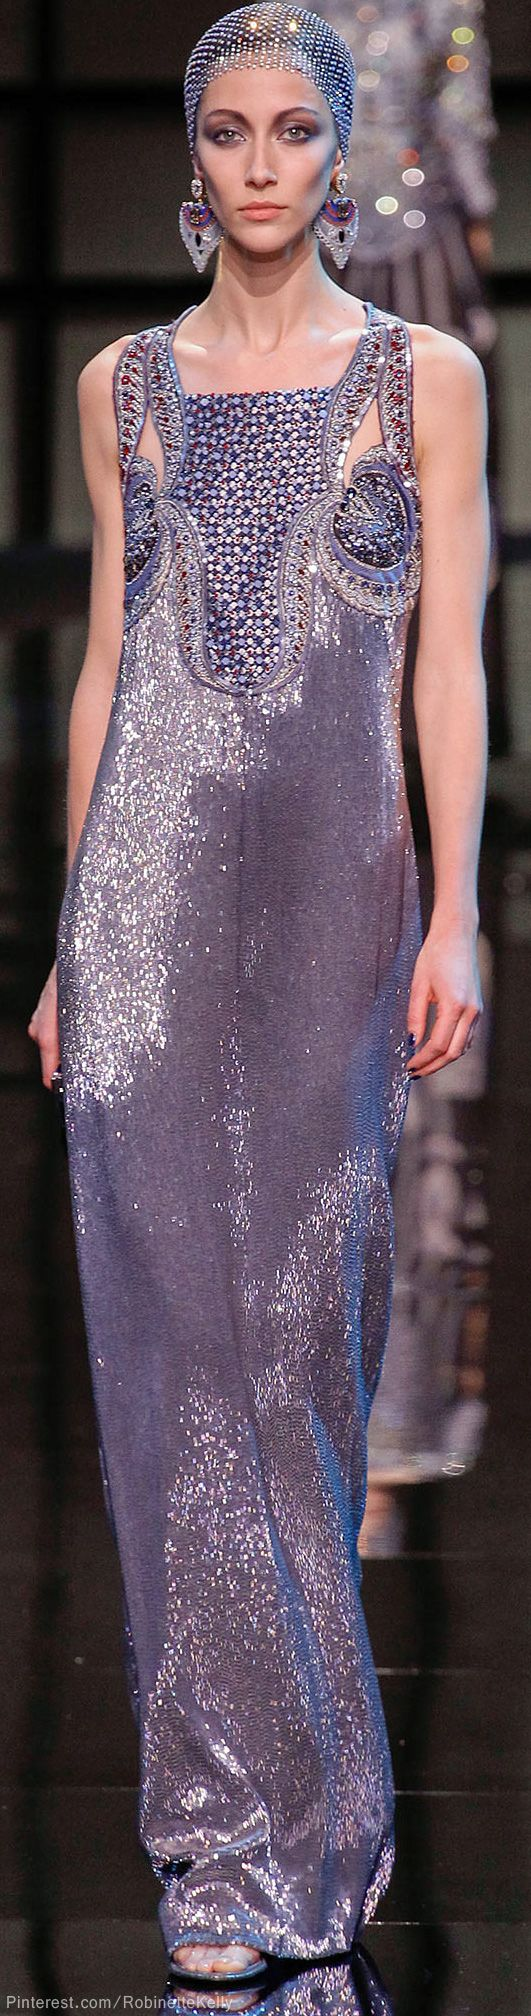 696 best Armani images on Pinterest | Armani prive, Evening gowns ...